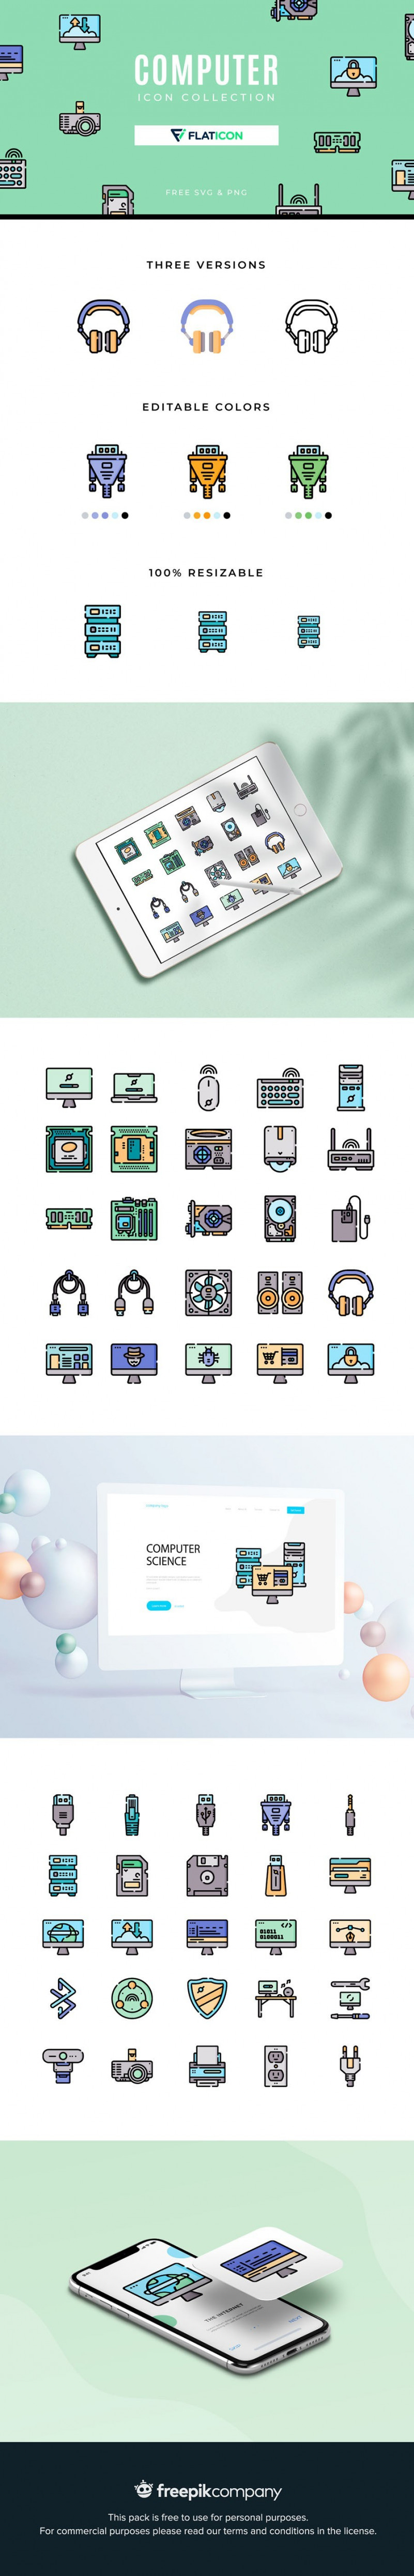 Free Computer Icon Collection